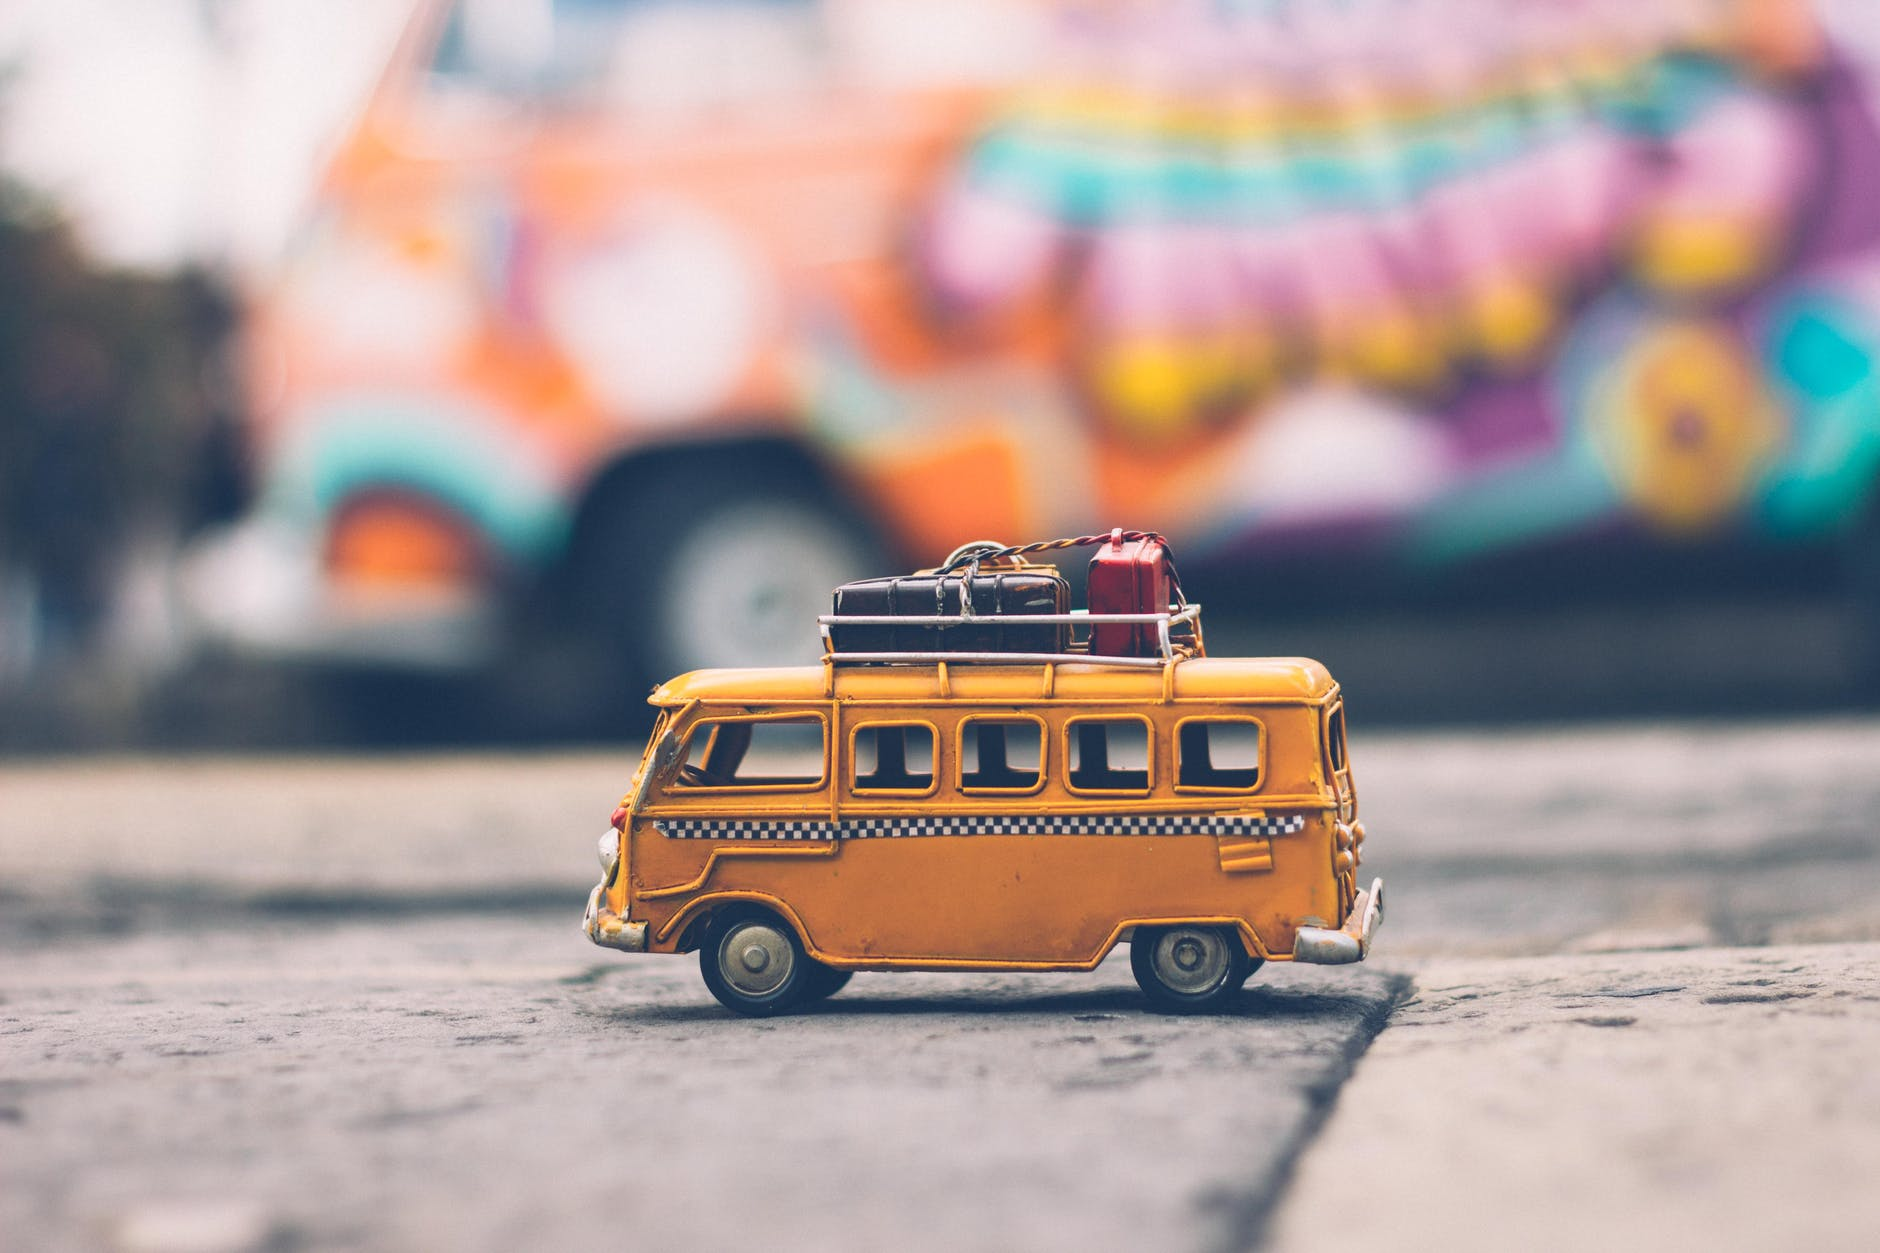 selective focus photography of yellow school bus die cast